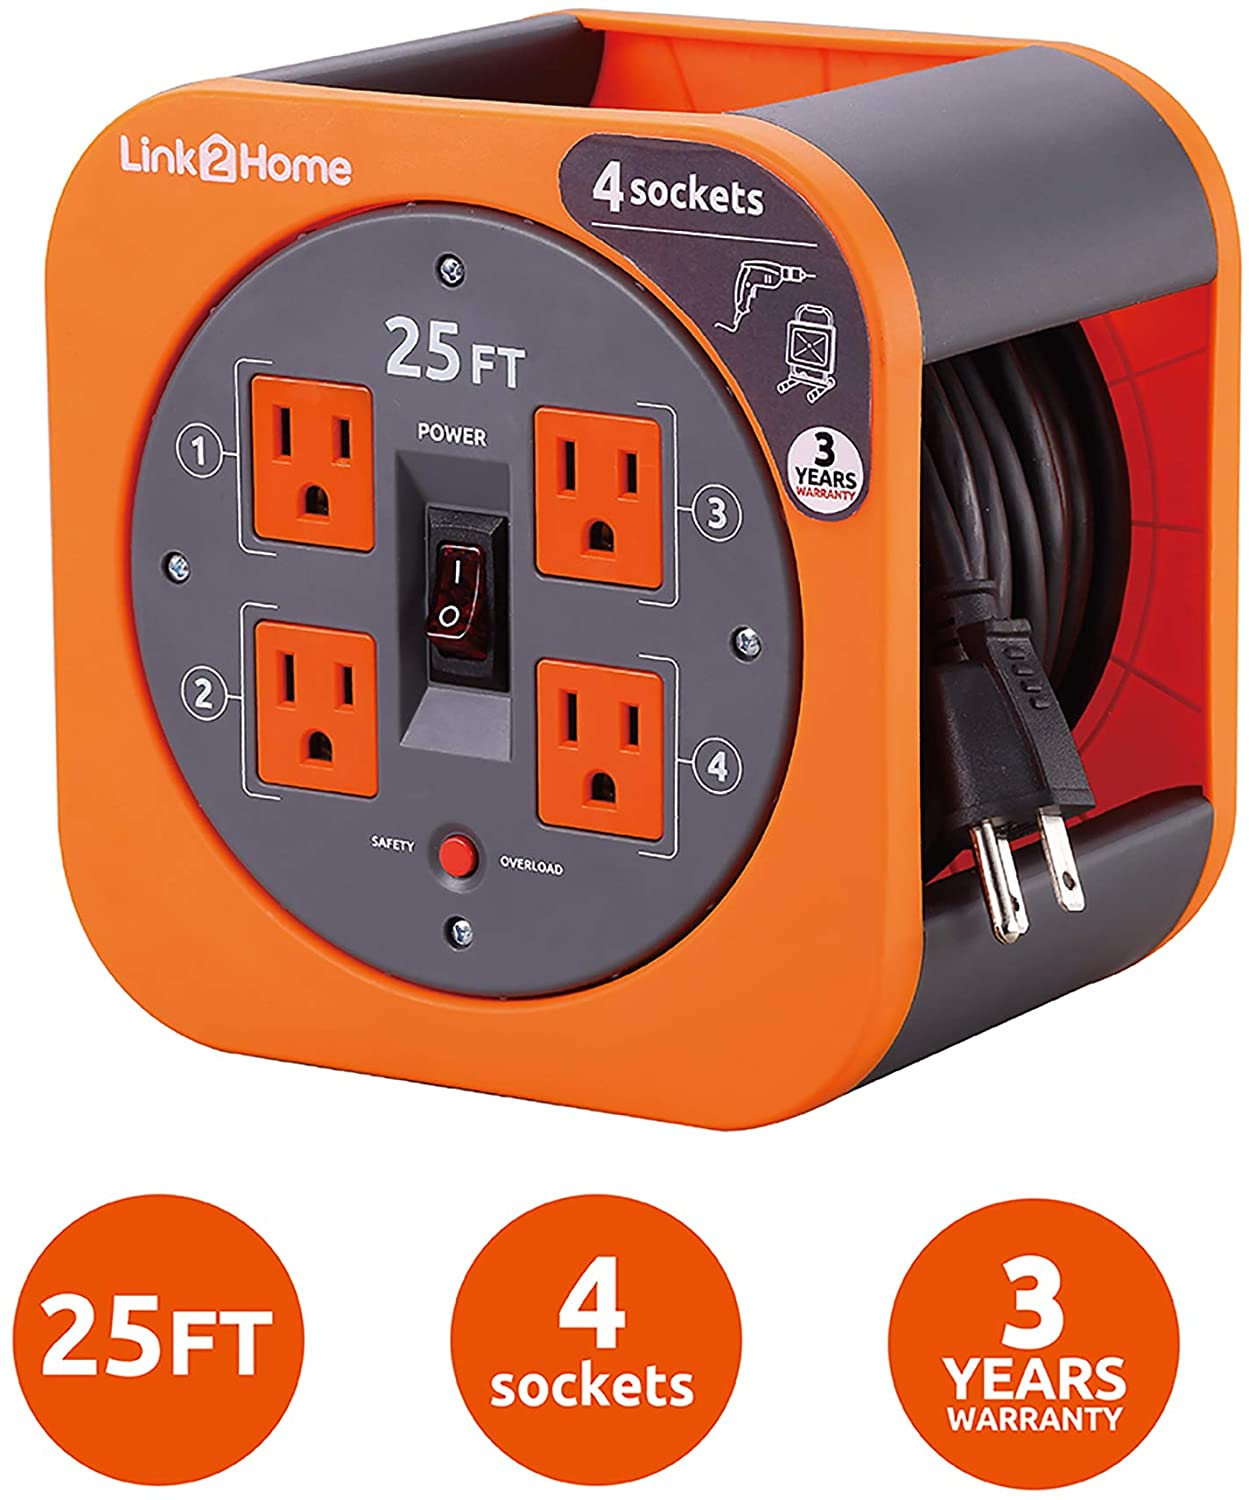 Link2Home Cord Reel 25 ft. Extension Cord 4 Power Outlets – 16 AWG SJT Cable.